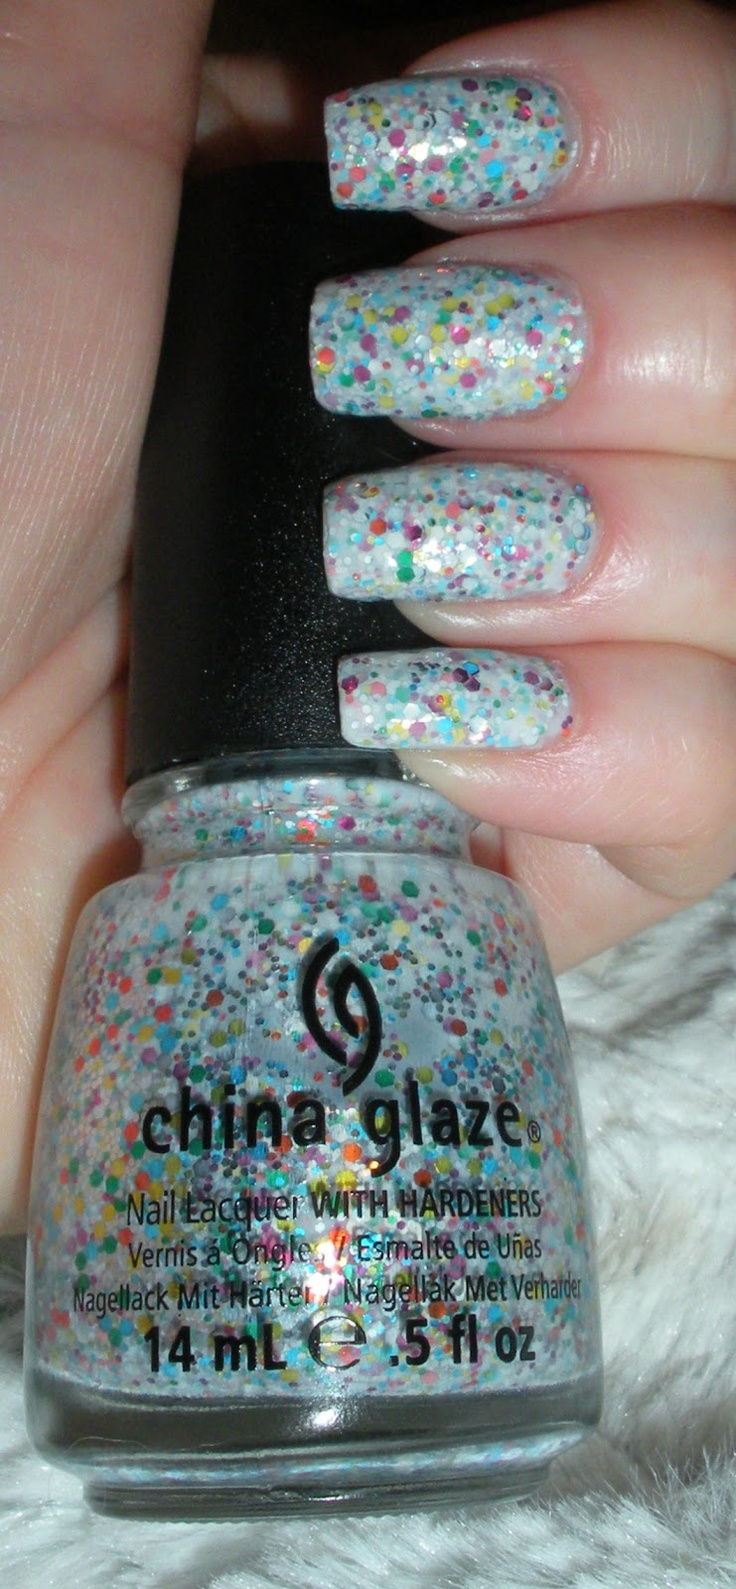 China Glaze's It's a Trap-eze Manicure - from the Cirque du Soleil Worlds Away Collection, 1 mani as shown above actual bottle, $5